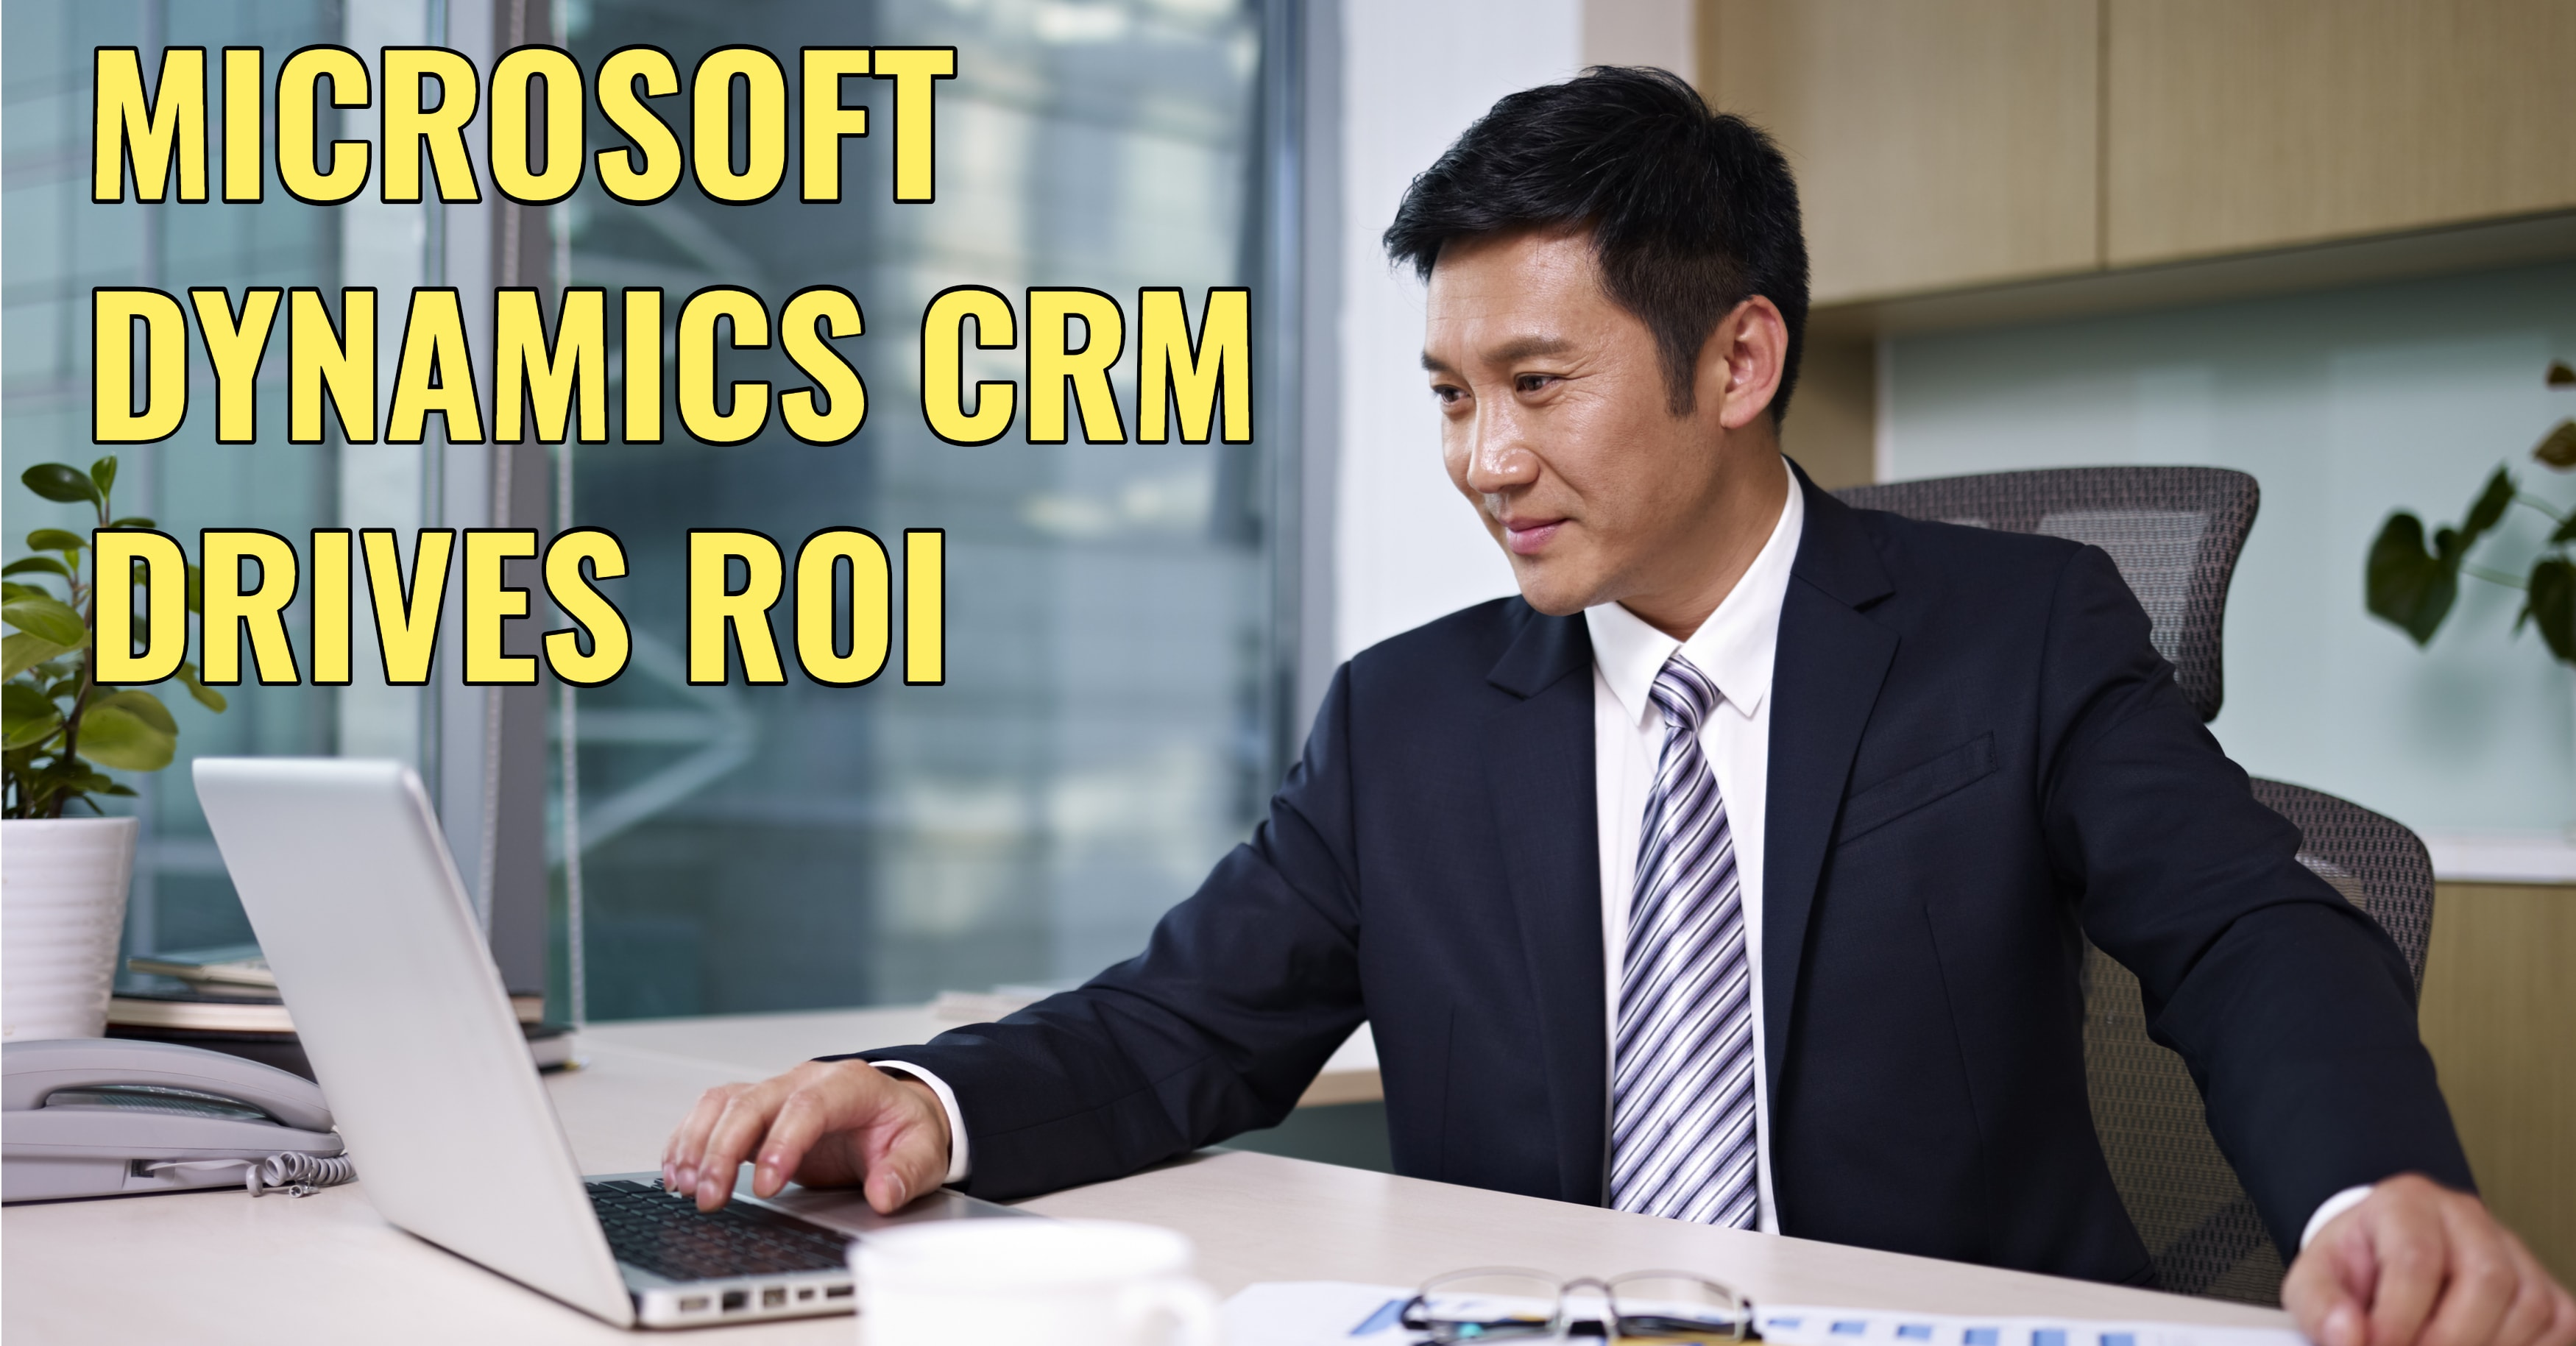 Microsoft Dynamics CRM Drives ROI for Your Business